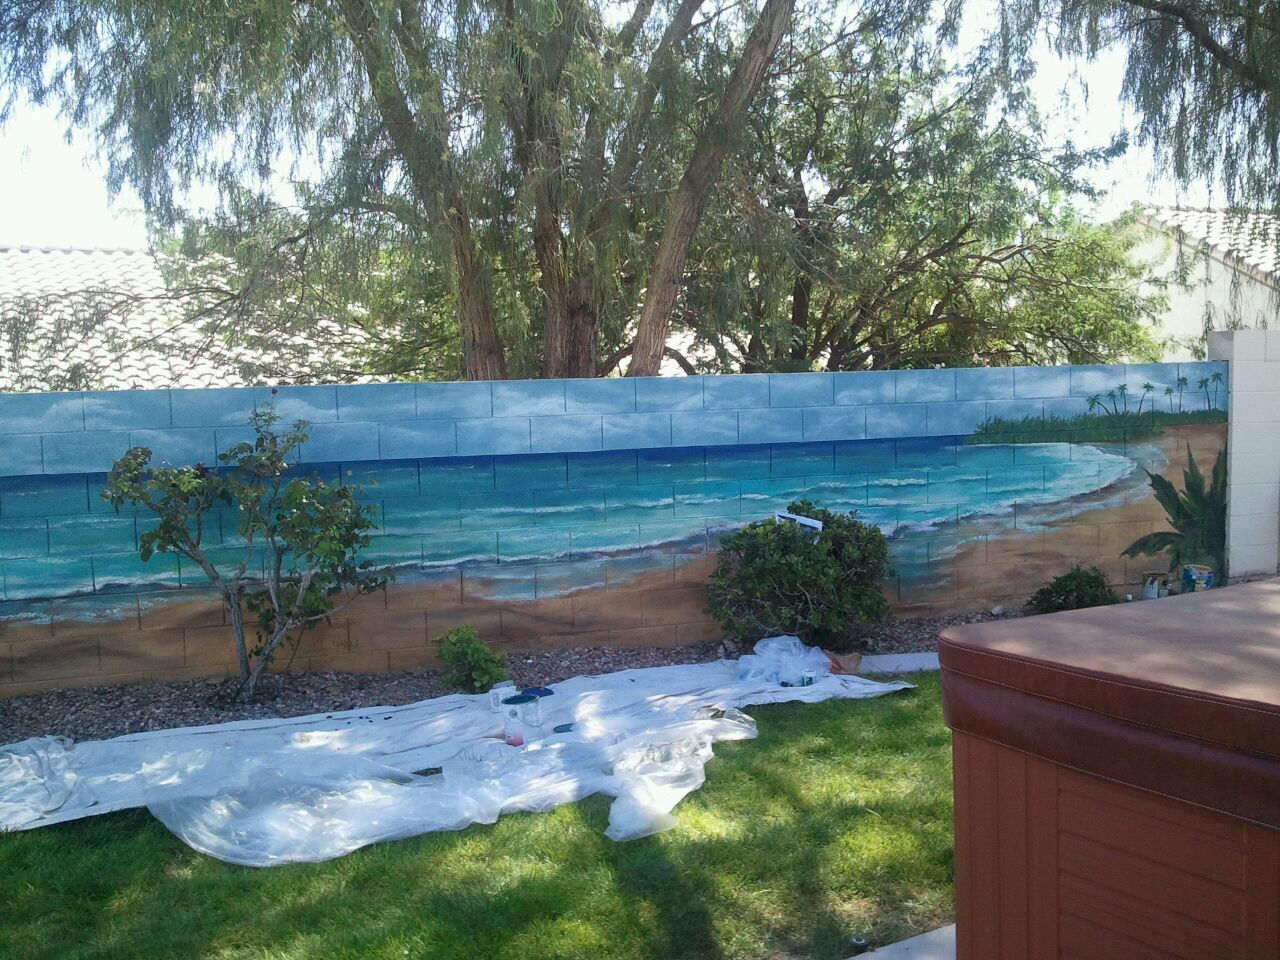 Ocean Outside Mural For A Brick Wall Beautiful Mirage In A Desert